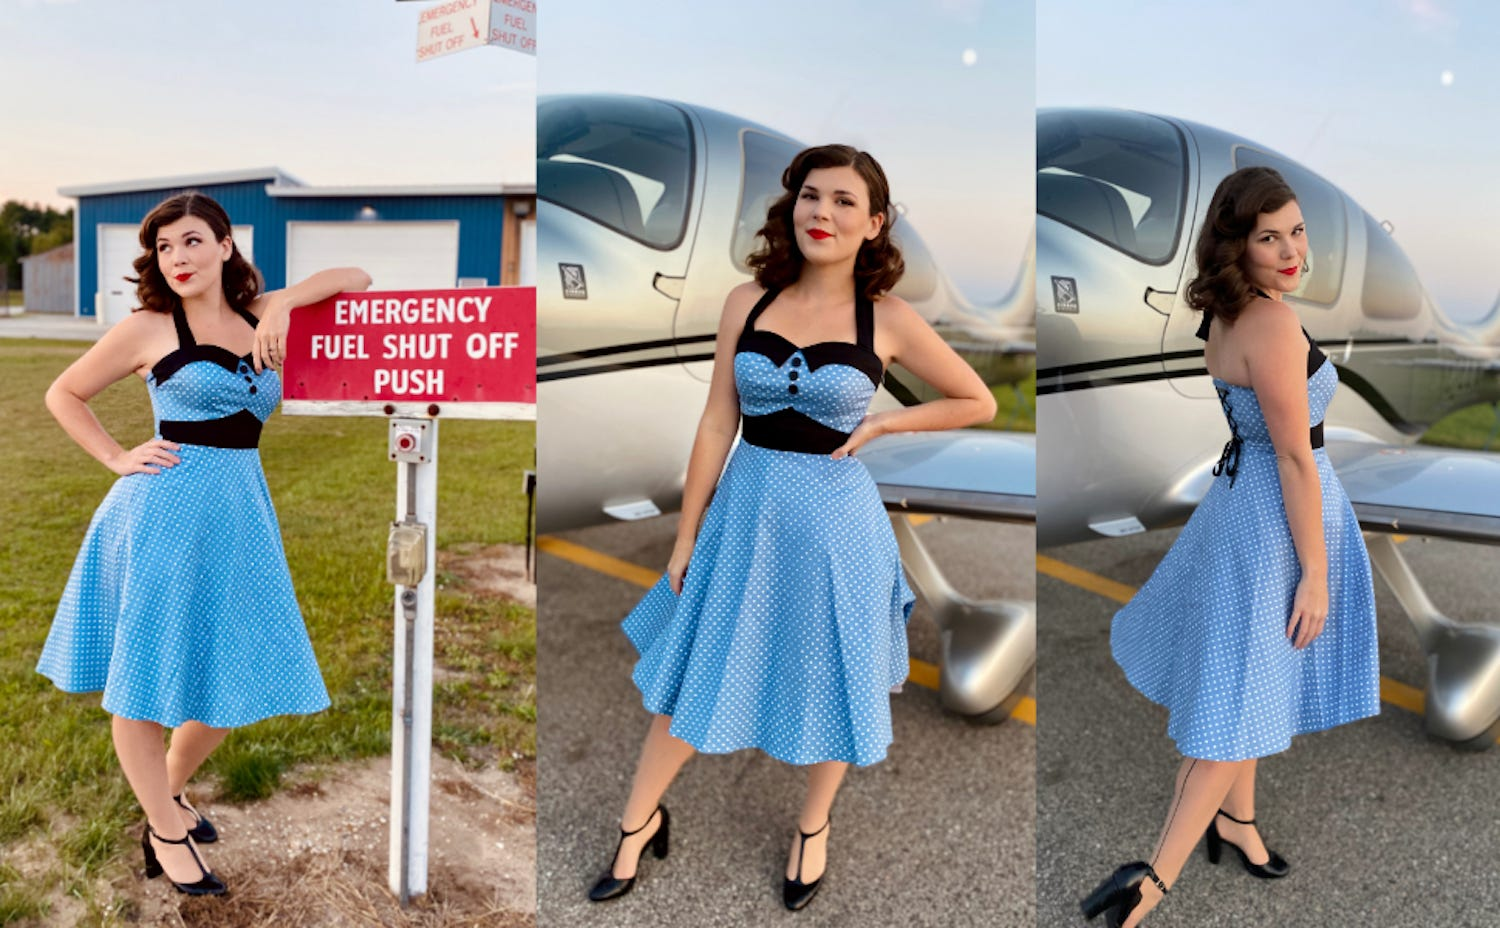 A woman in a blue and black polka dot retro halter dress